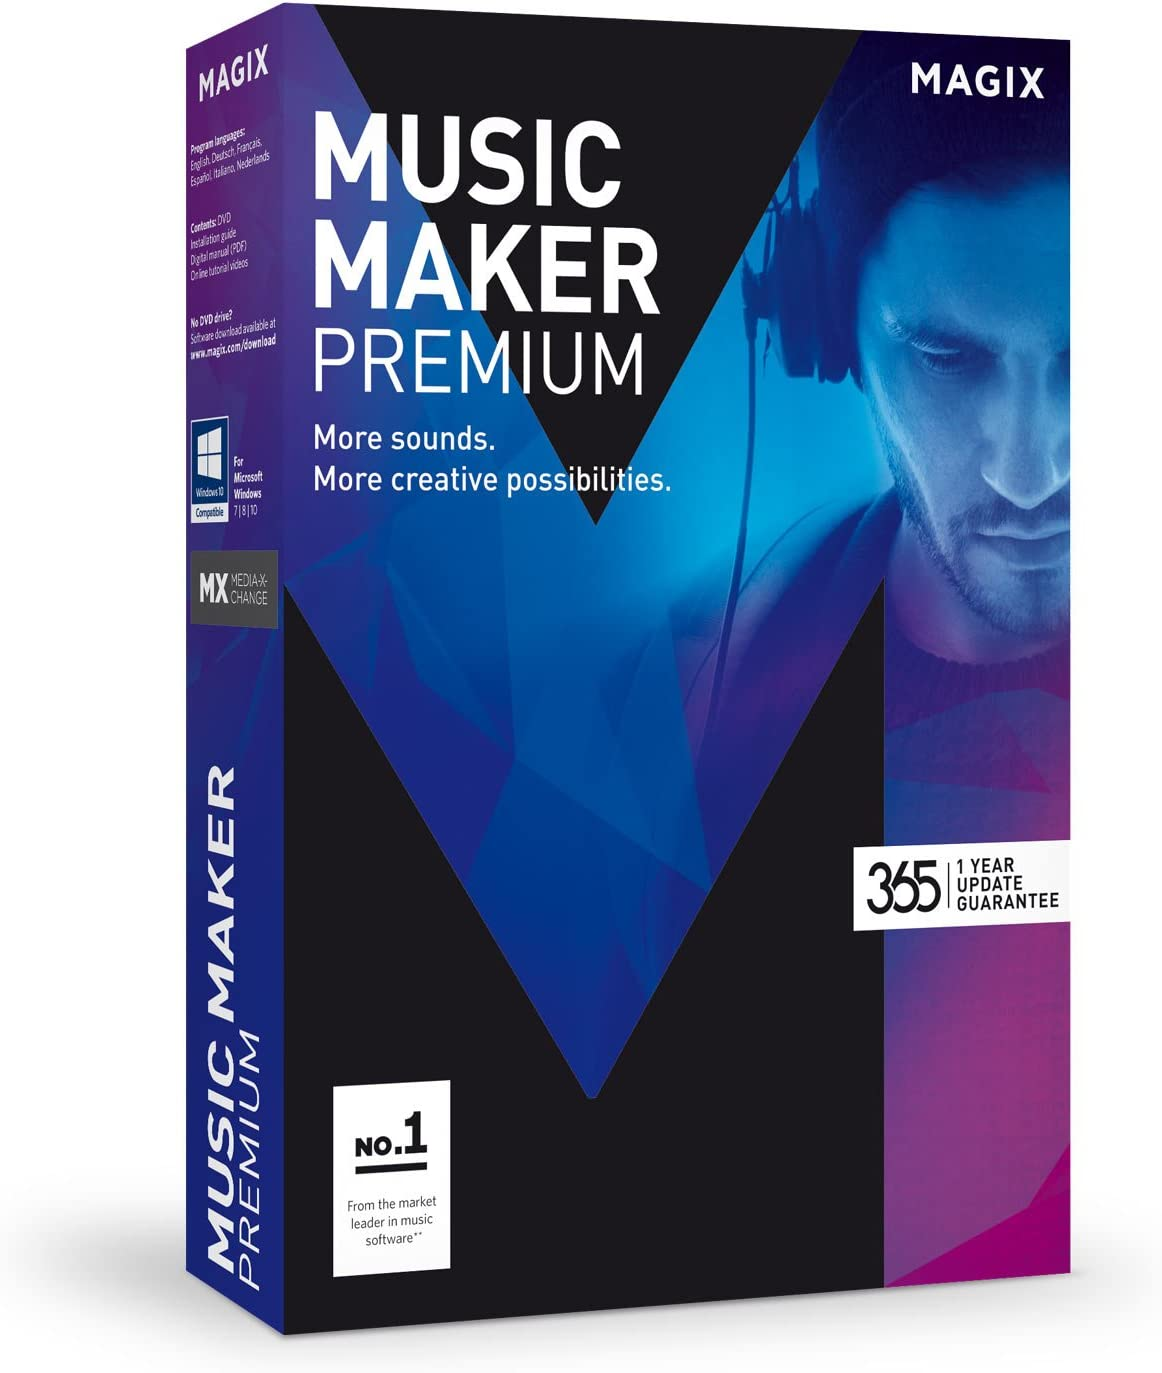 MAGIX Music Maker – 2017 Premium Edition – Music program: Record, edit and remix your own music.